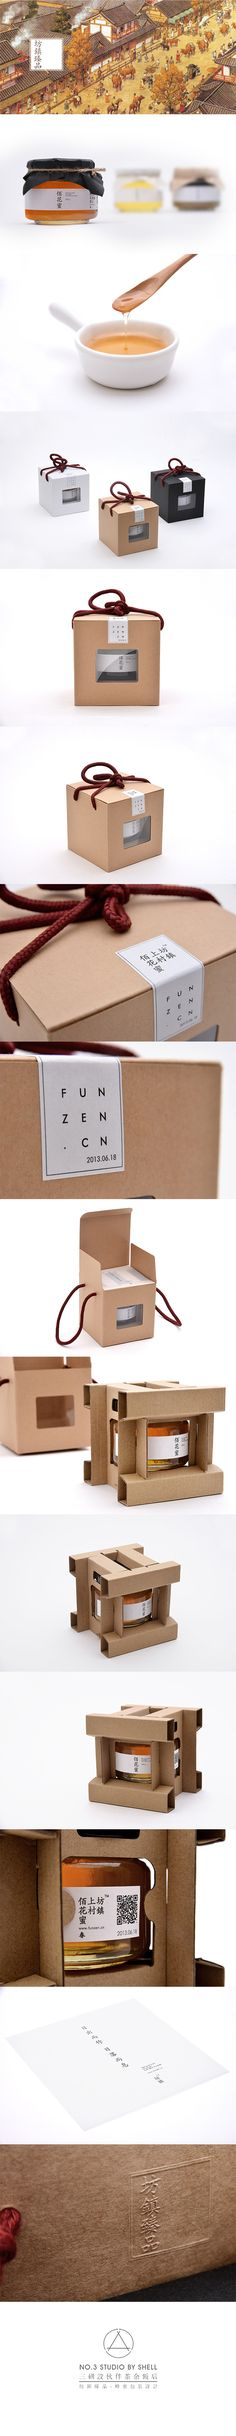 Fun Zen. Traditional honey. #Packaging #Design #Honey